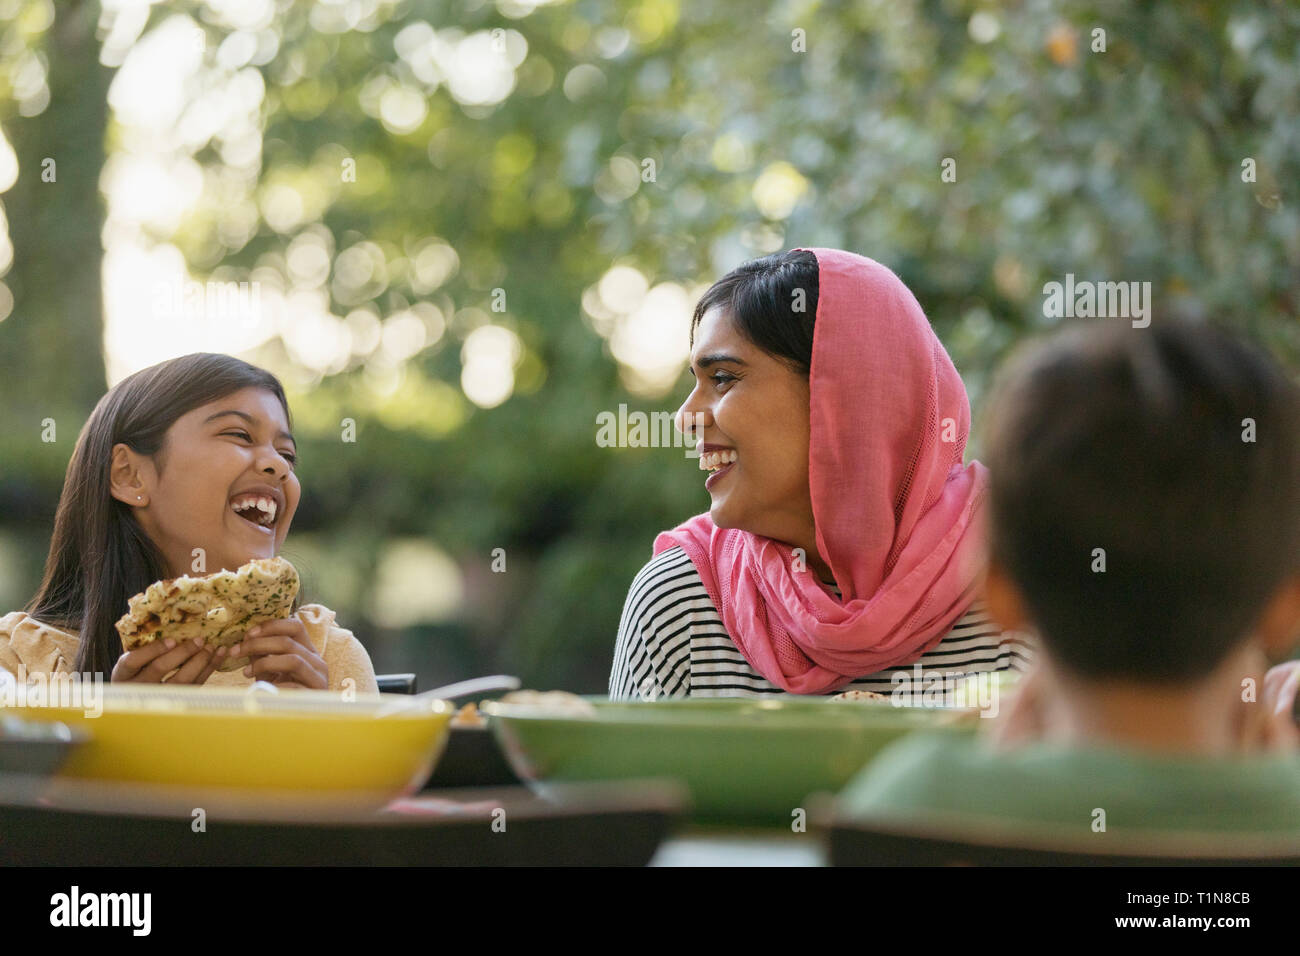 Mother in hijab and daughter laughing at dinner table Stock Photo